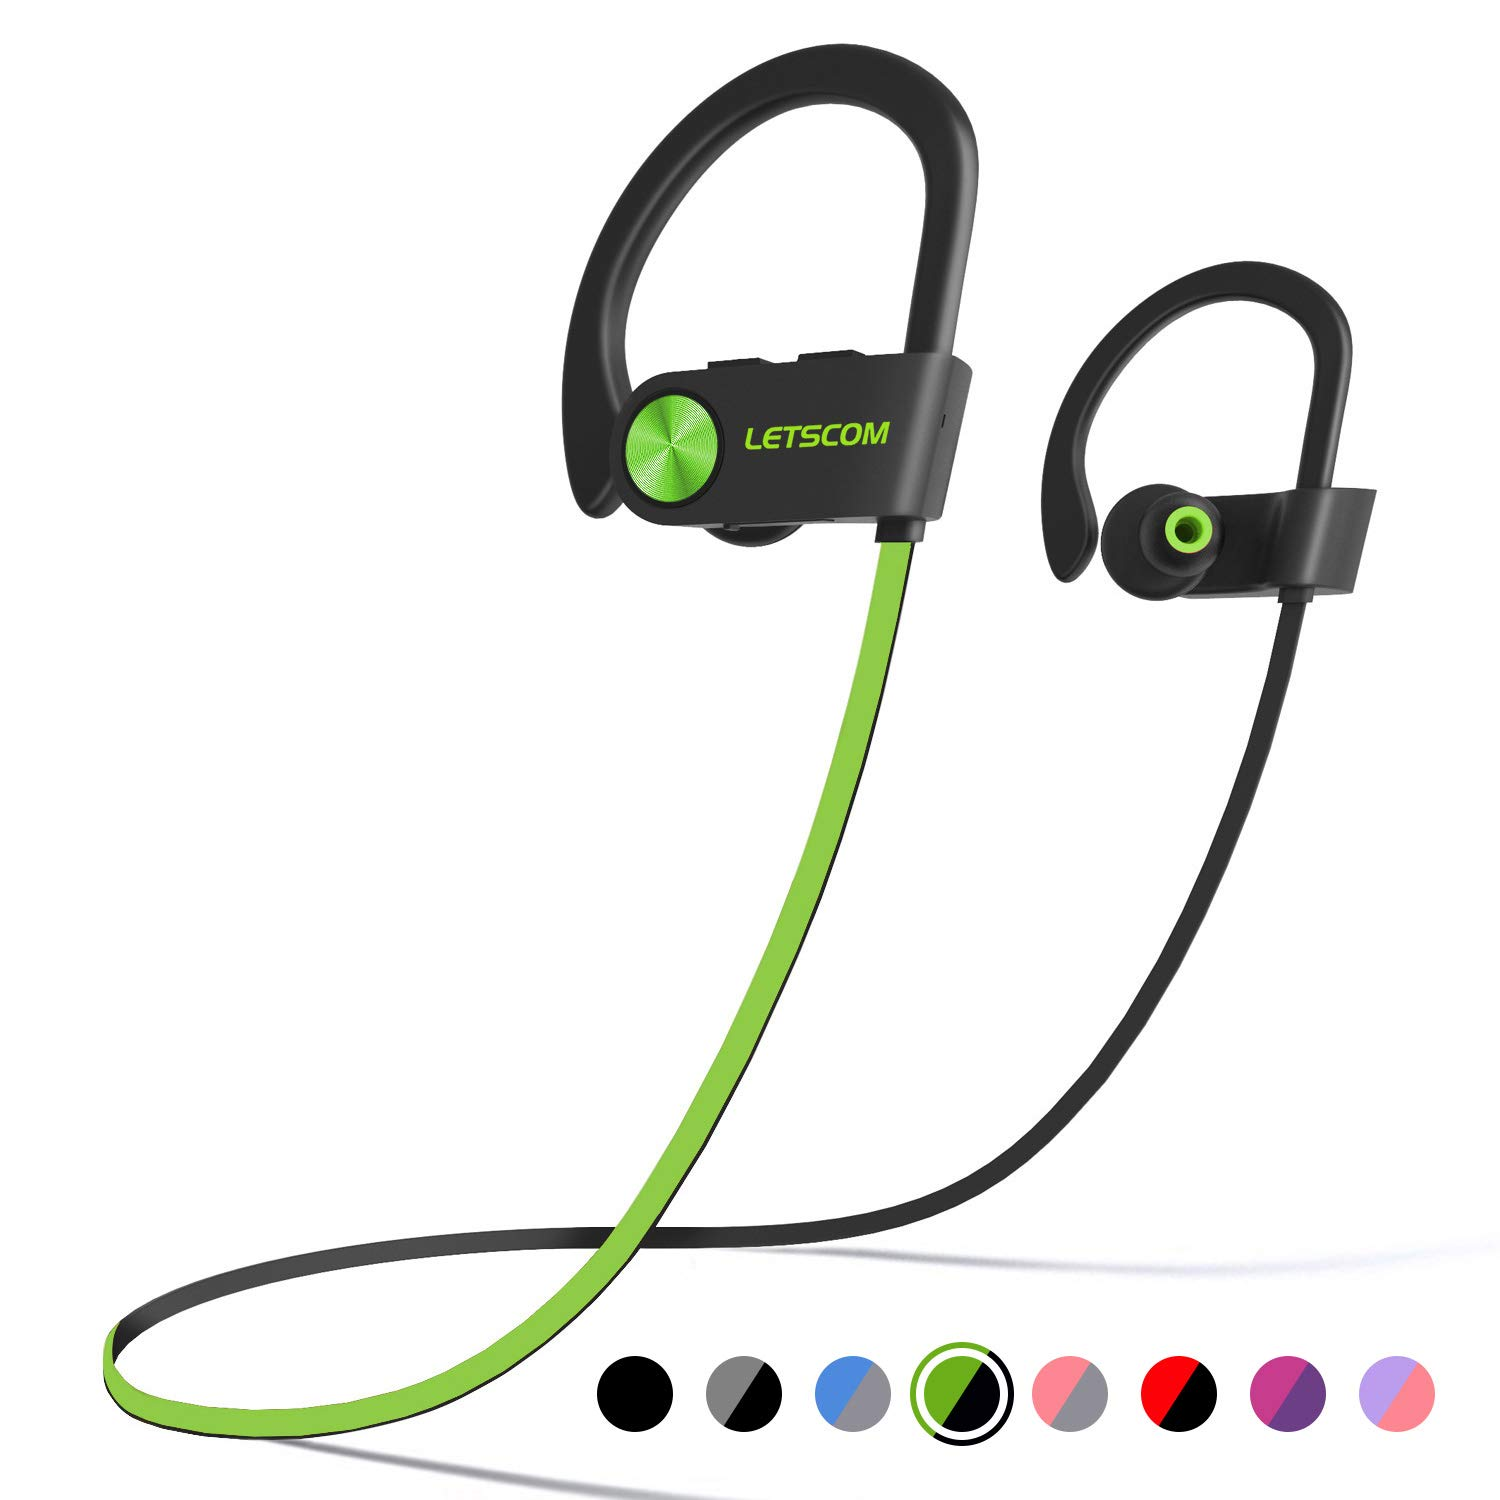 LETSCOM Bluetooth Headphones IPX7 Waterproof, Wireless Sport Earphones, HiFi Bass Stereo Sweatproof Earbuds w/Mic, Noise Cancelling Headset for Workout, Running, Gym, 8 Hours Play Time by LETSCOM